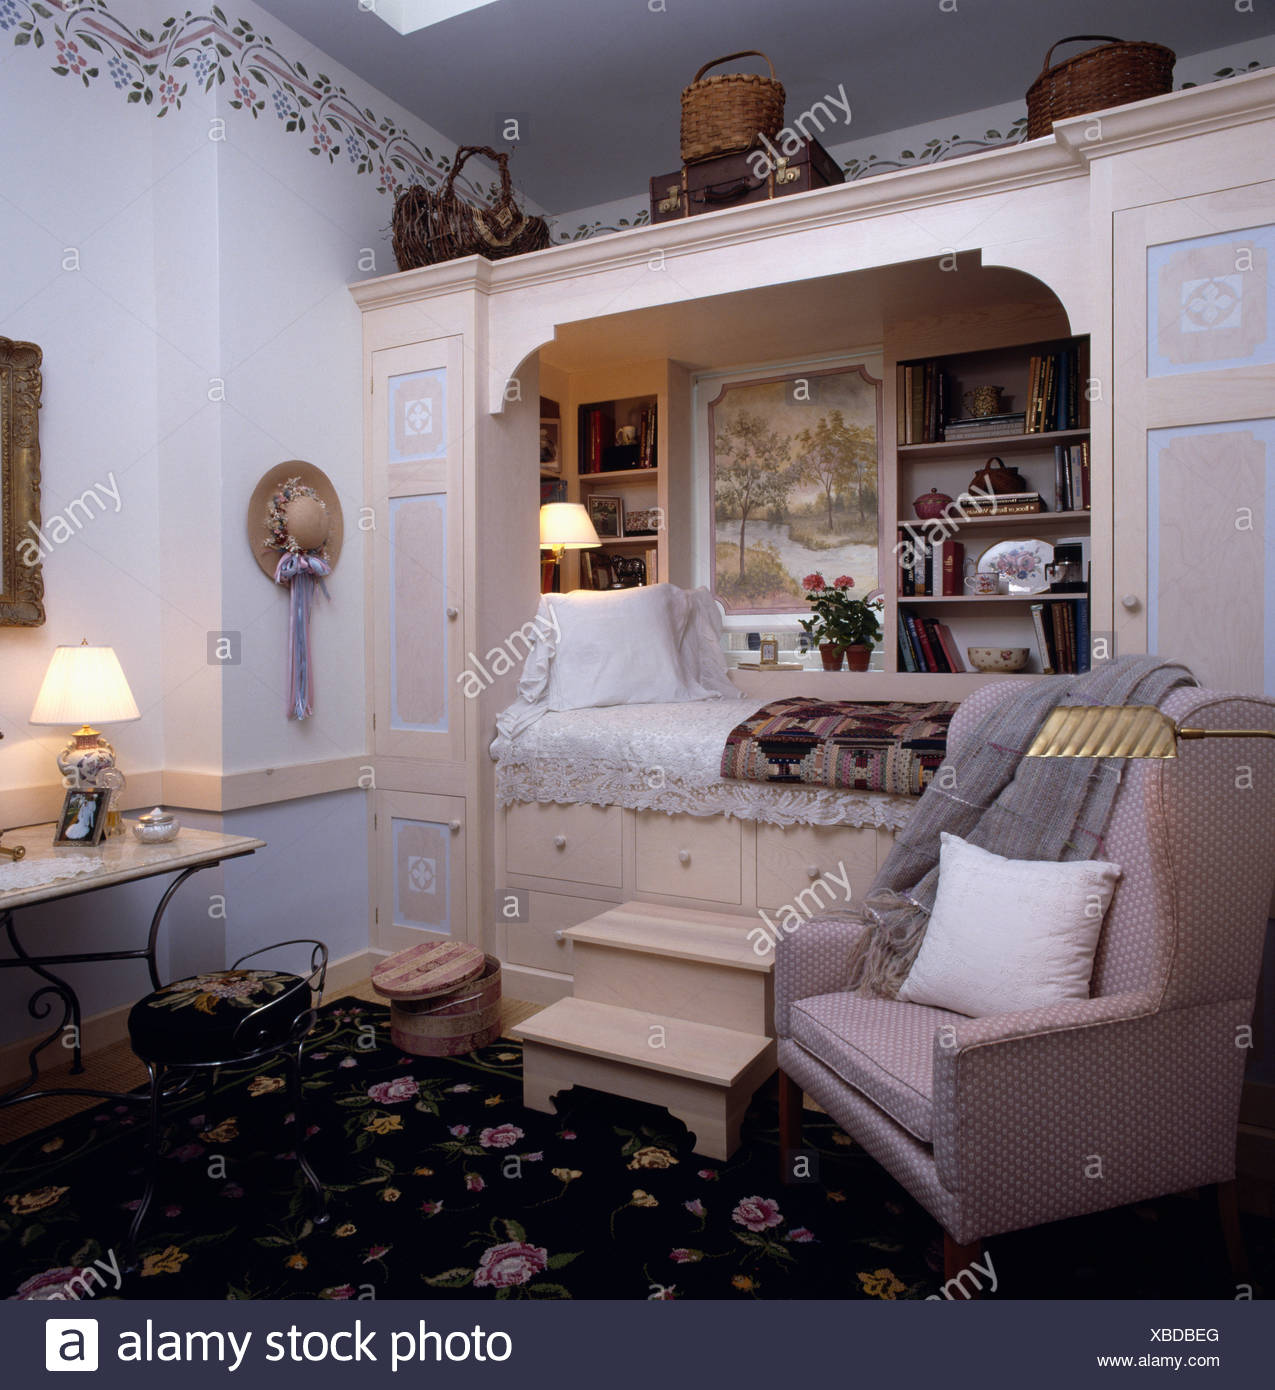 Steps Up To Platform Bed Built Into Alcove With Storage Cupboards In Eighties Bedroom Stock Photo Alamy